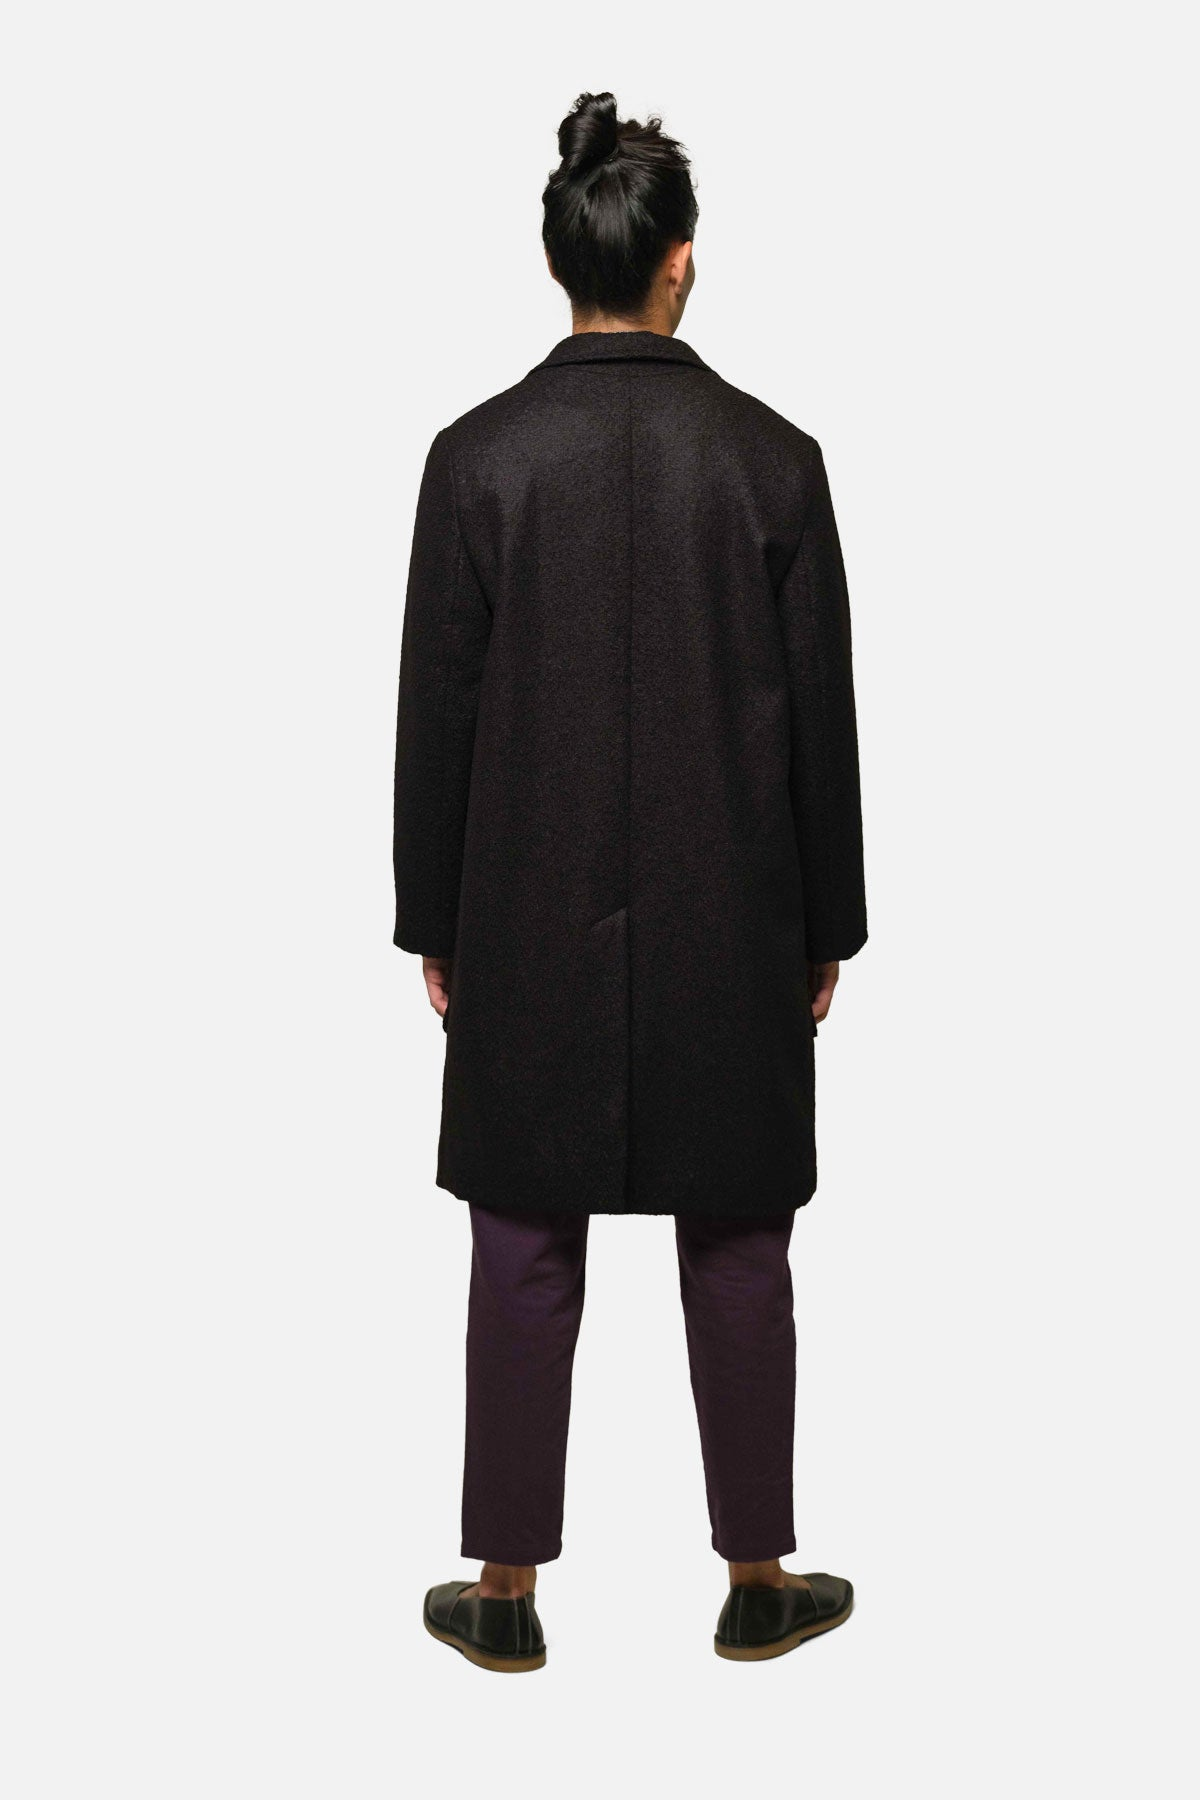 CHESTERFIELD COAT IN BLACK BOILED WOOL - Fortune Goods